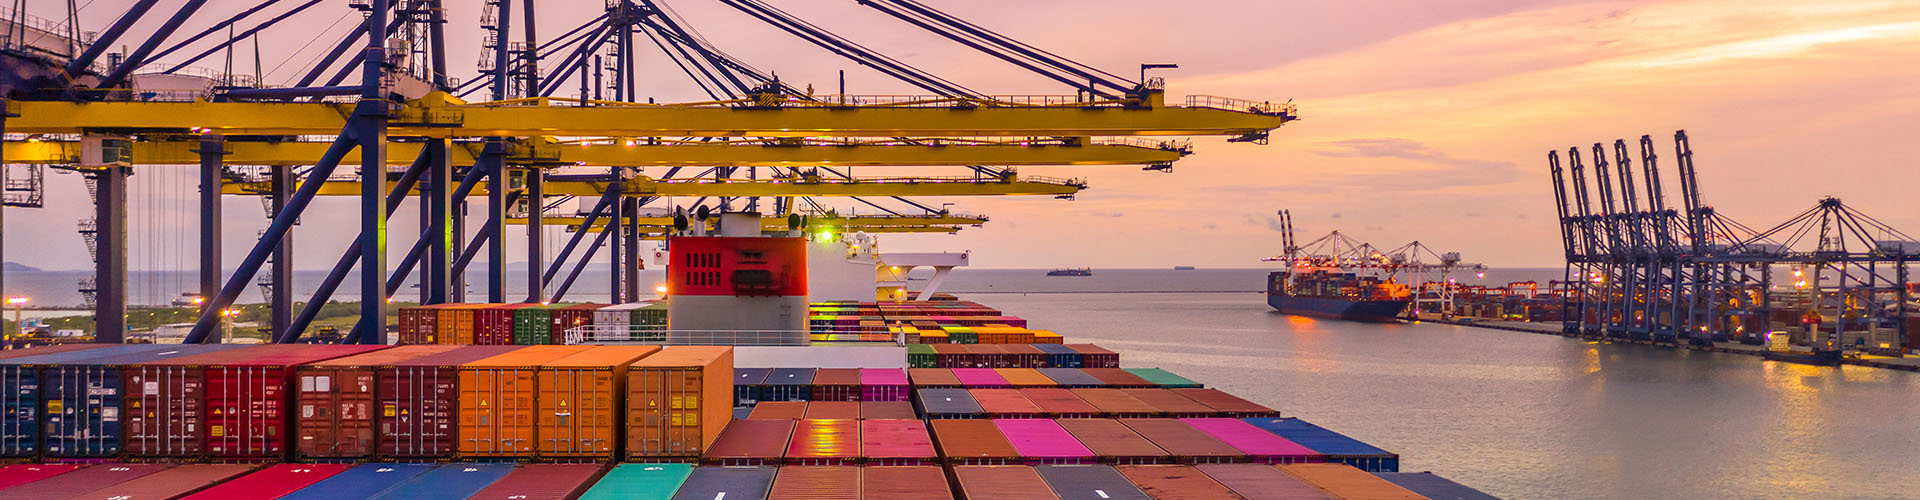 Container ship loading and unloading in deep sea port at sunset, Aerial view of business logistic import and  export freight  transportation by container ship in open sea.